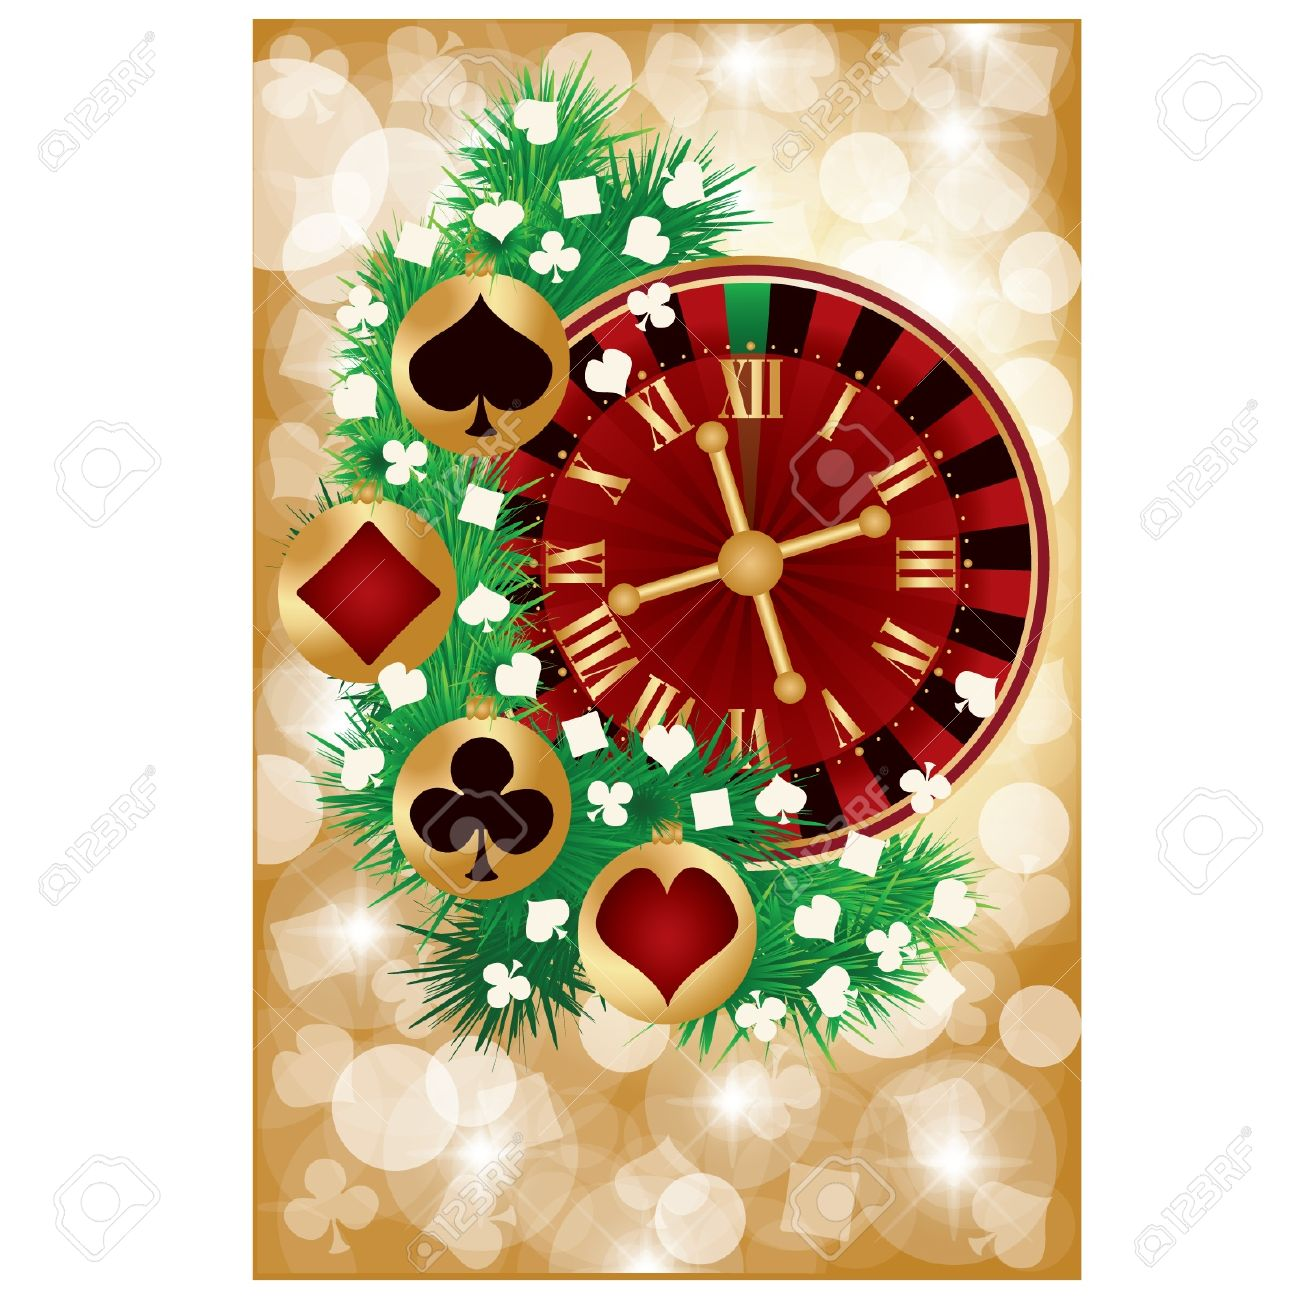 Casino Christmas Greeting Card Vector Illustration Royalty Free